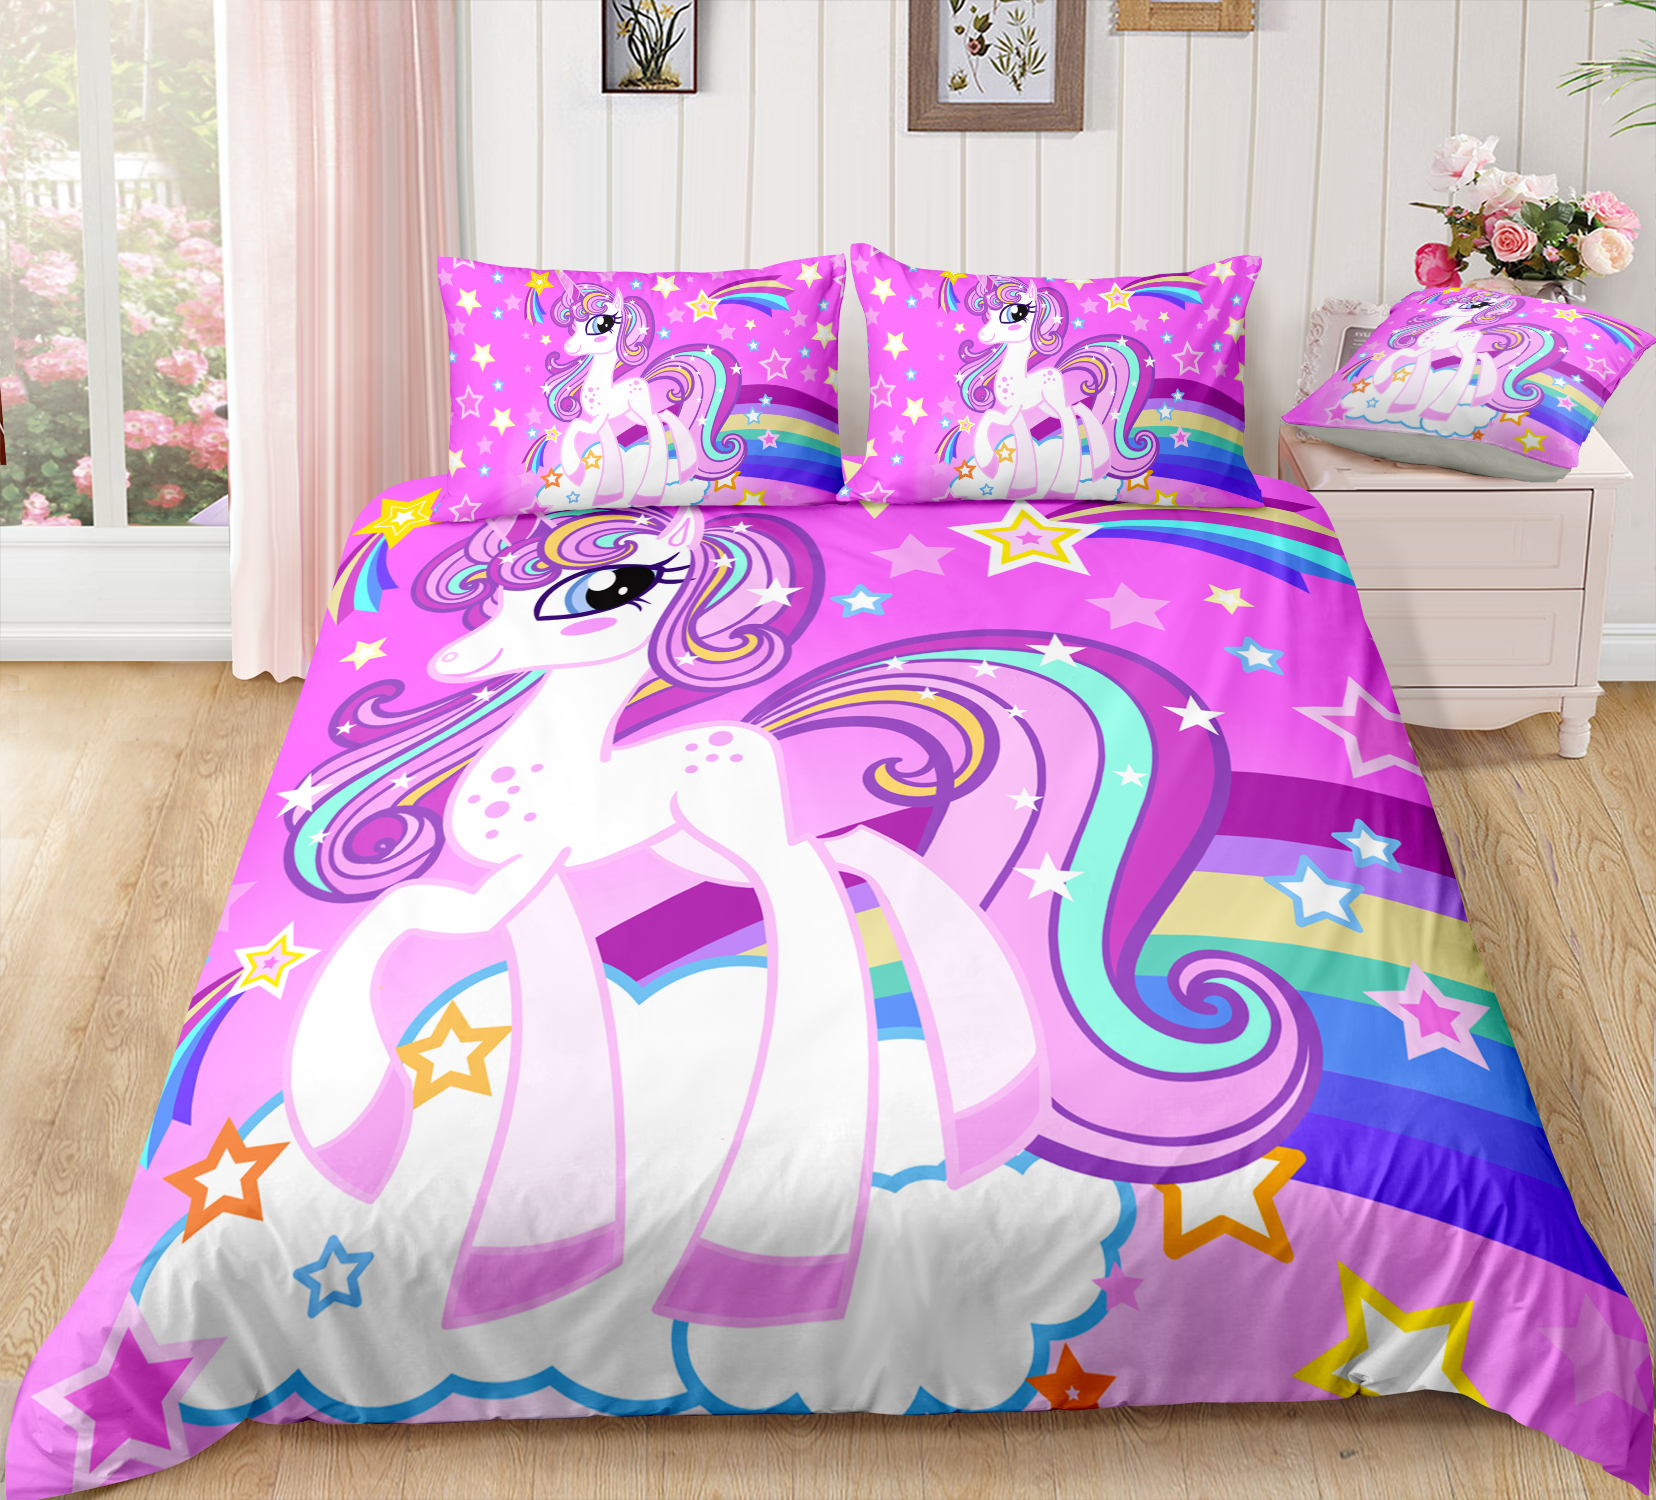 pink cloud bedding set girly twin full queen king comforter cover set for teen